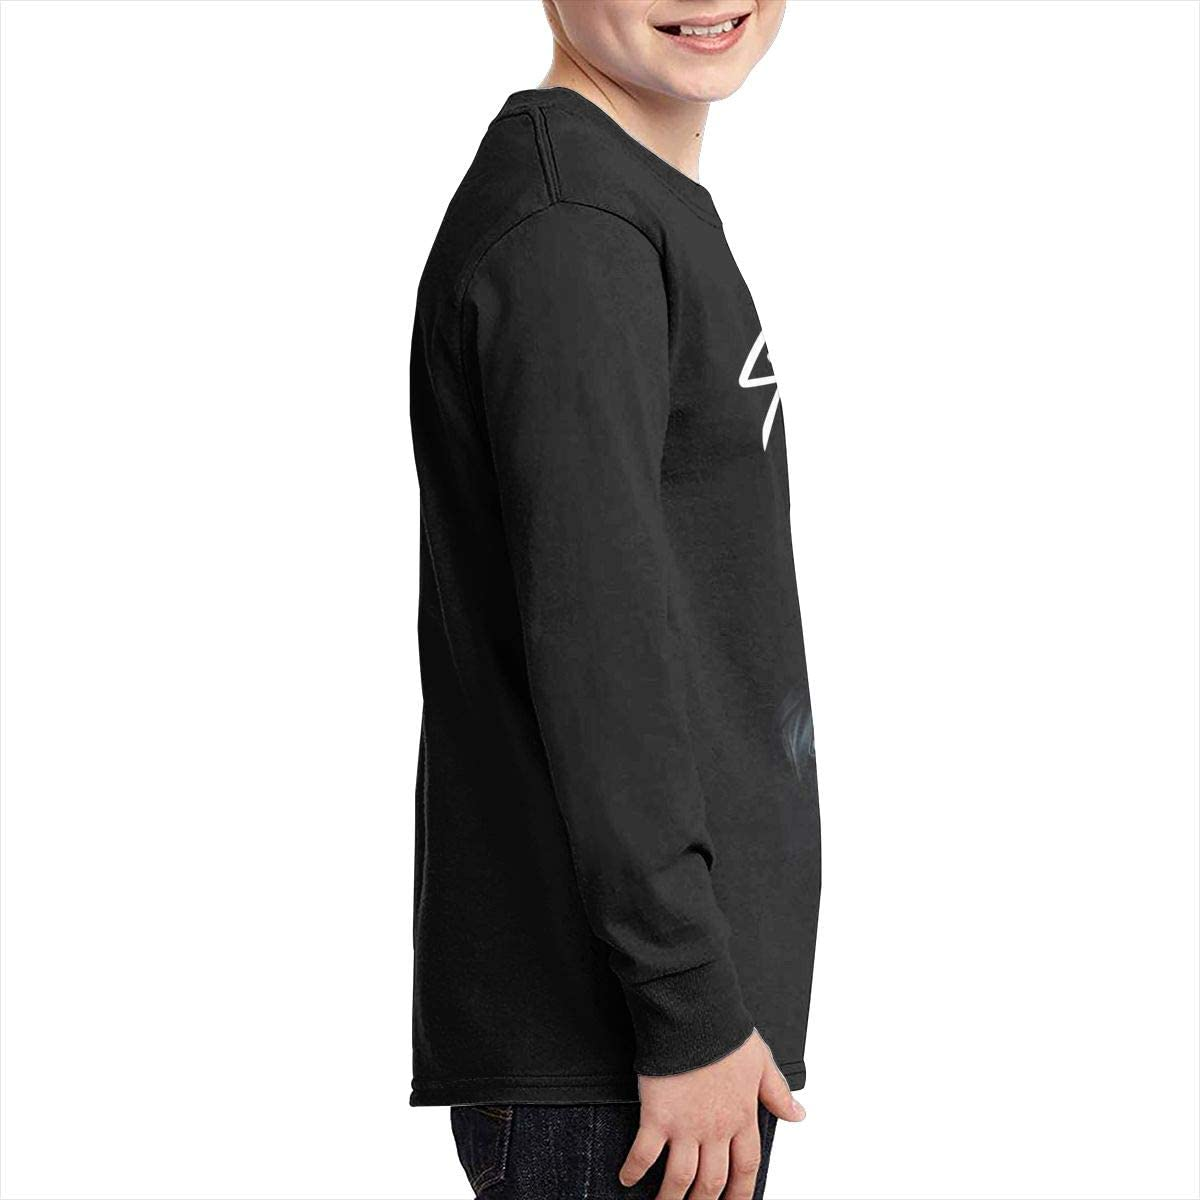 MichaelHazzard G-Eazy Youth Casual Long Sleeve Crewneck Tee T-Shirt for Boys and Girls